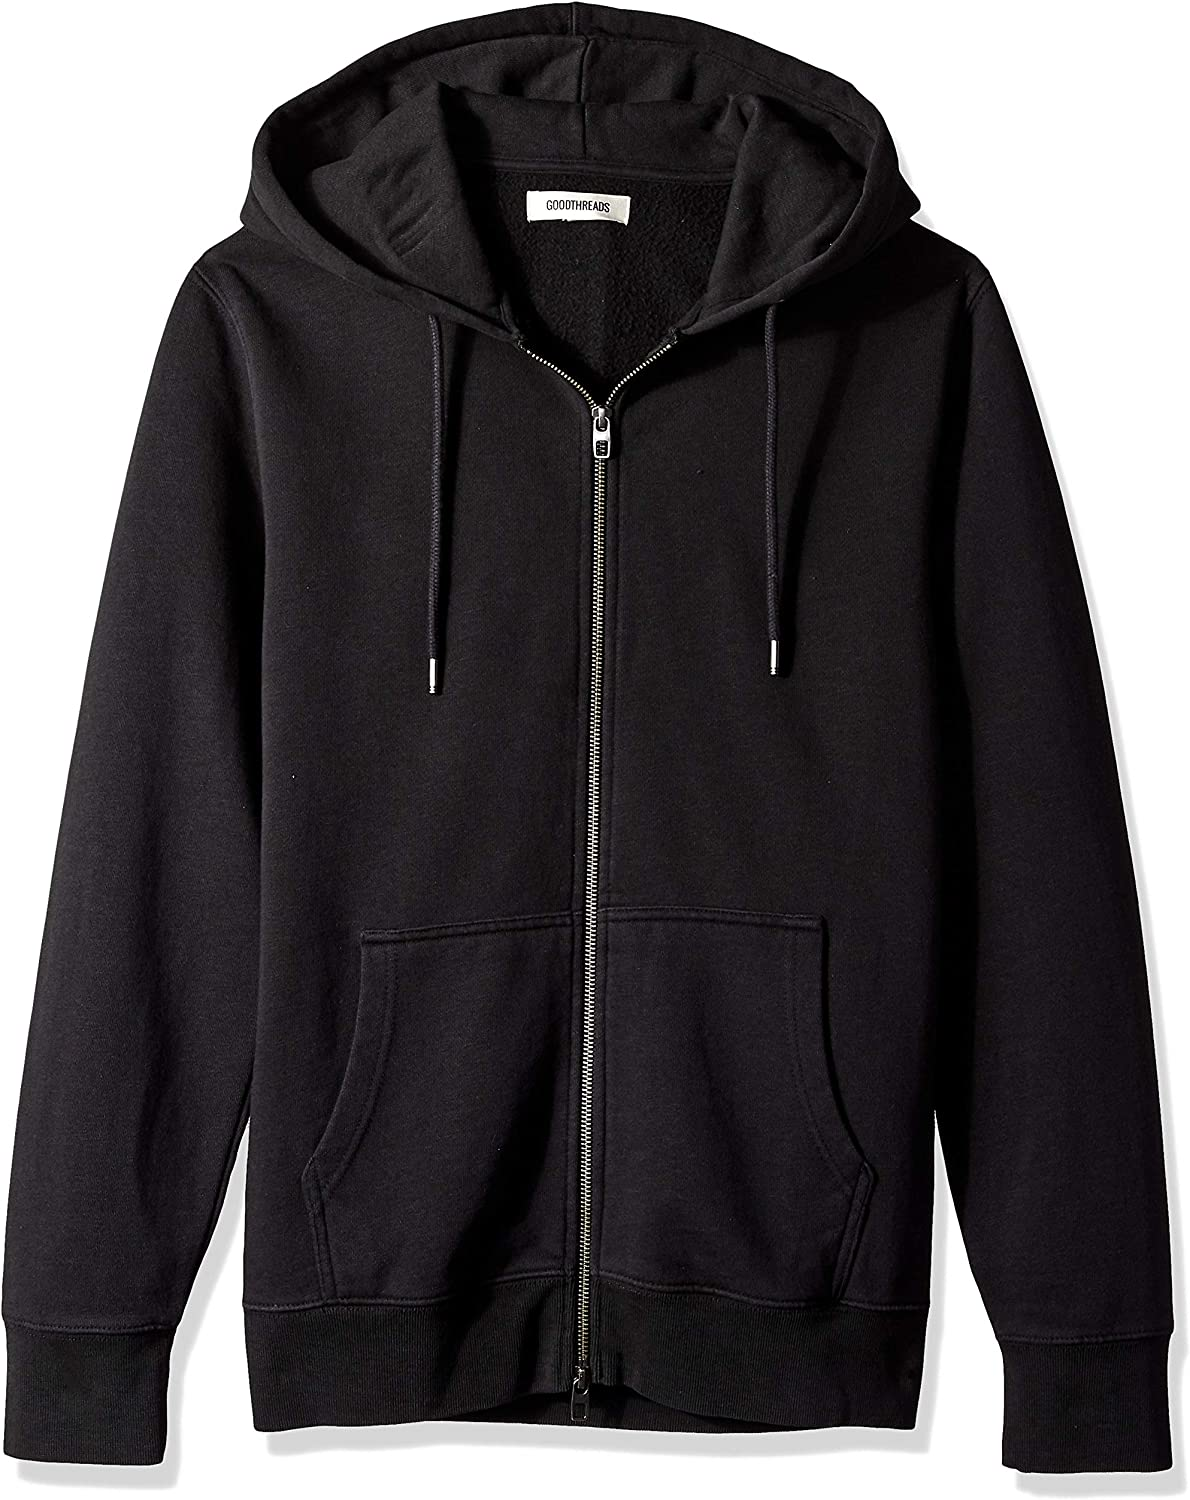 Brand - Goodthreads Men's Fullzip Fleece Hoodie: Clothing